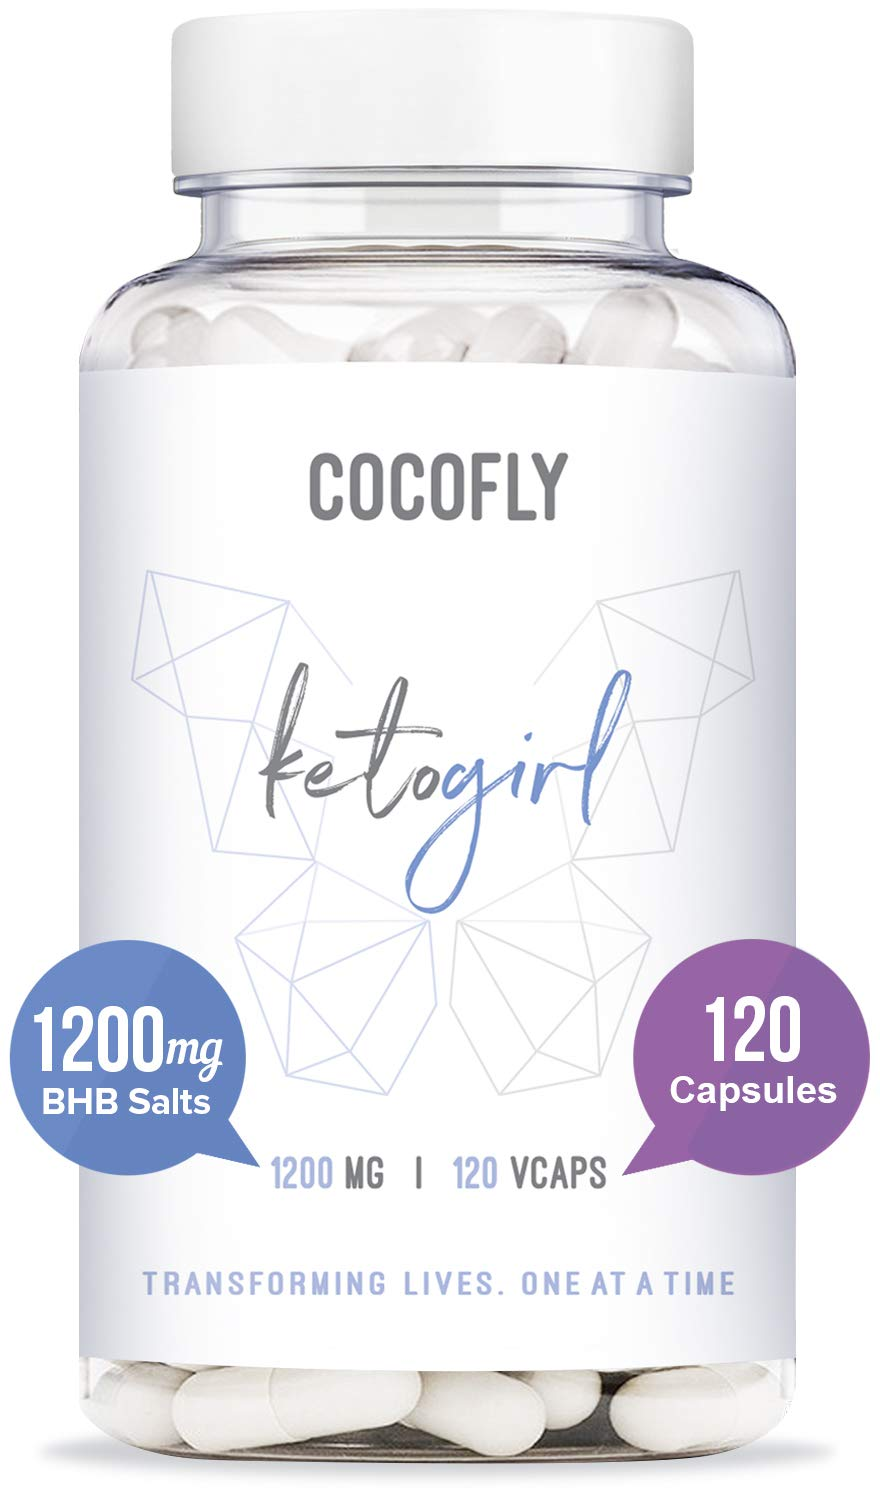 COCOFLY KetoGirl Ultra Keto Pills - 1200 mg, Rapid Fat Burners for Women, 120 Pure Capsules, Super Fast Ketosis, Enhanced BHB Salts, 6X Advanced Weight Loss Supplement, Exogenous Ketones, Slim Boost by COCOFLY